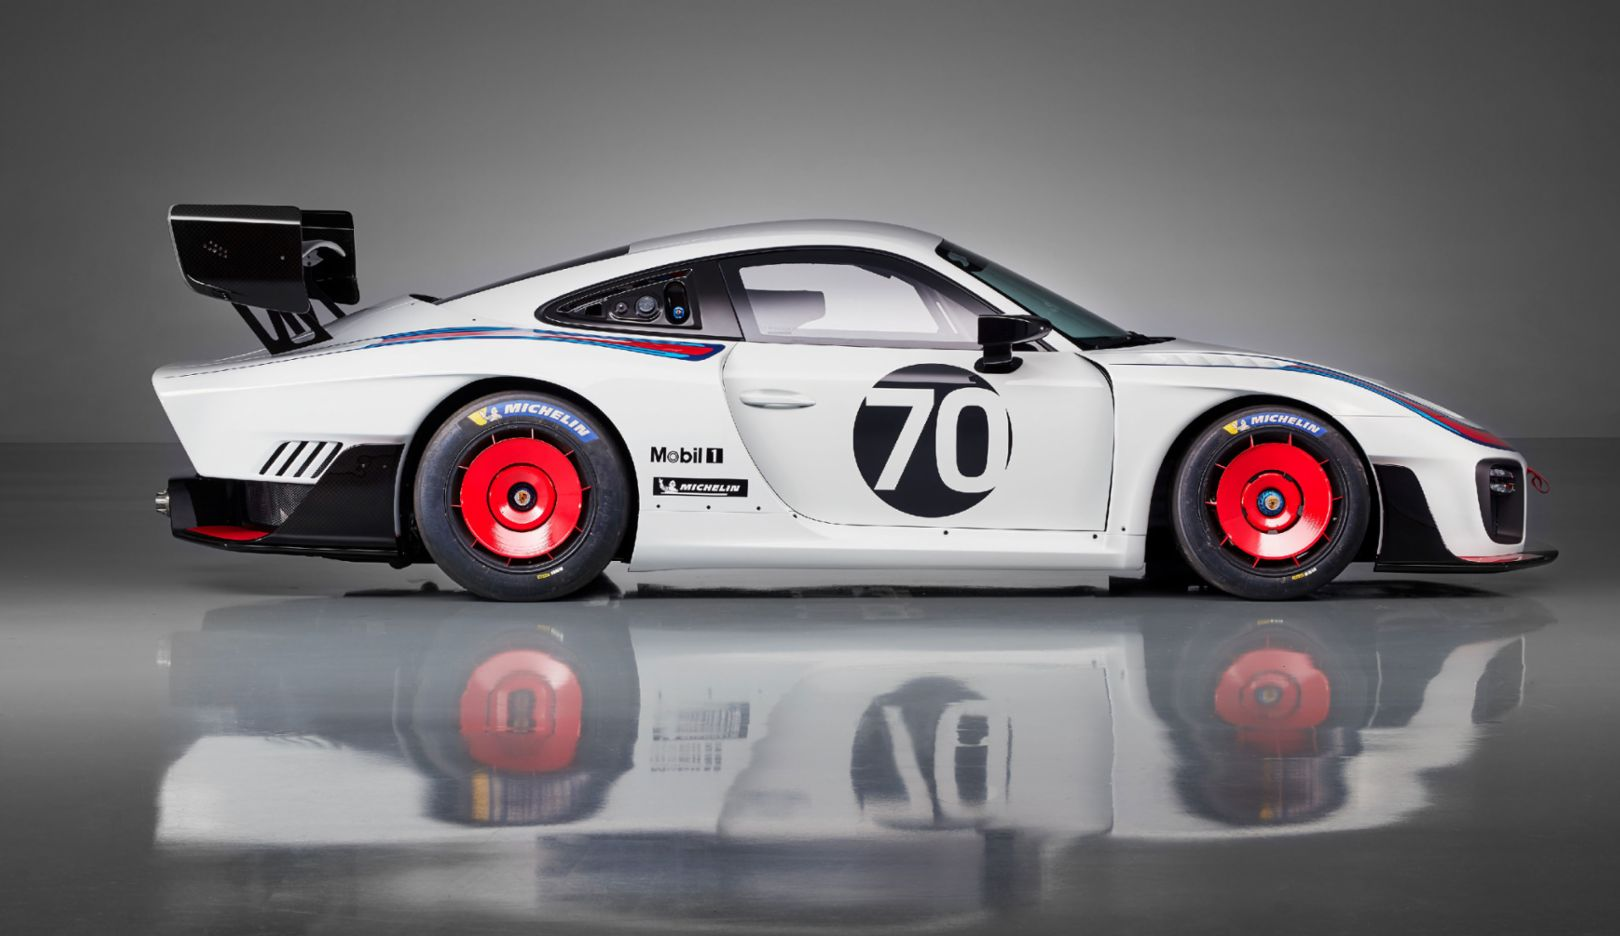 World premiere: Exclusive new edition of the Porsche 935